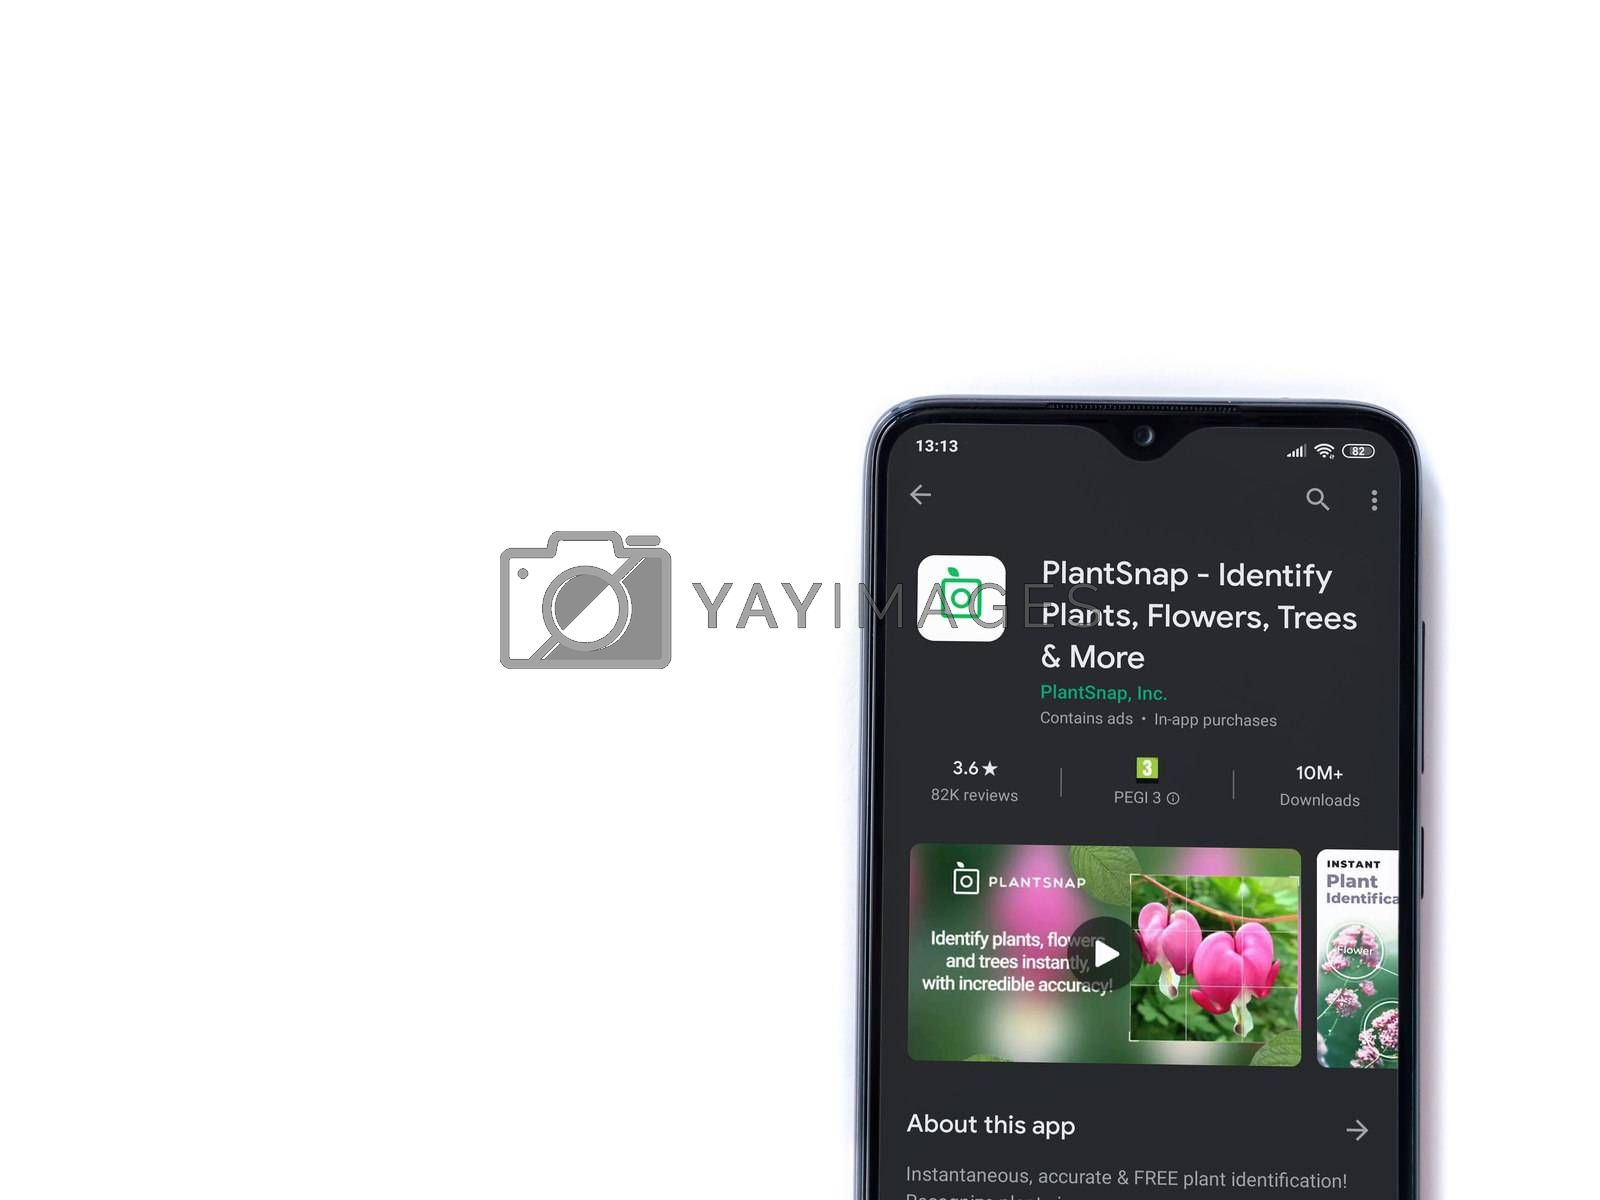 Lod, Israel - July 8, 2020: PlantSnap app play store page on the display of a black mobile smartphone isolated on white background. Top view flat lay with copy space.